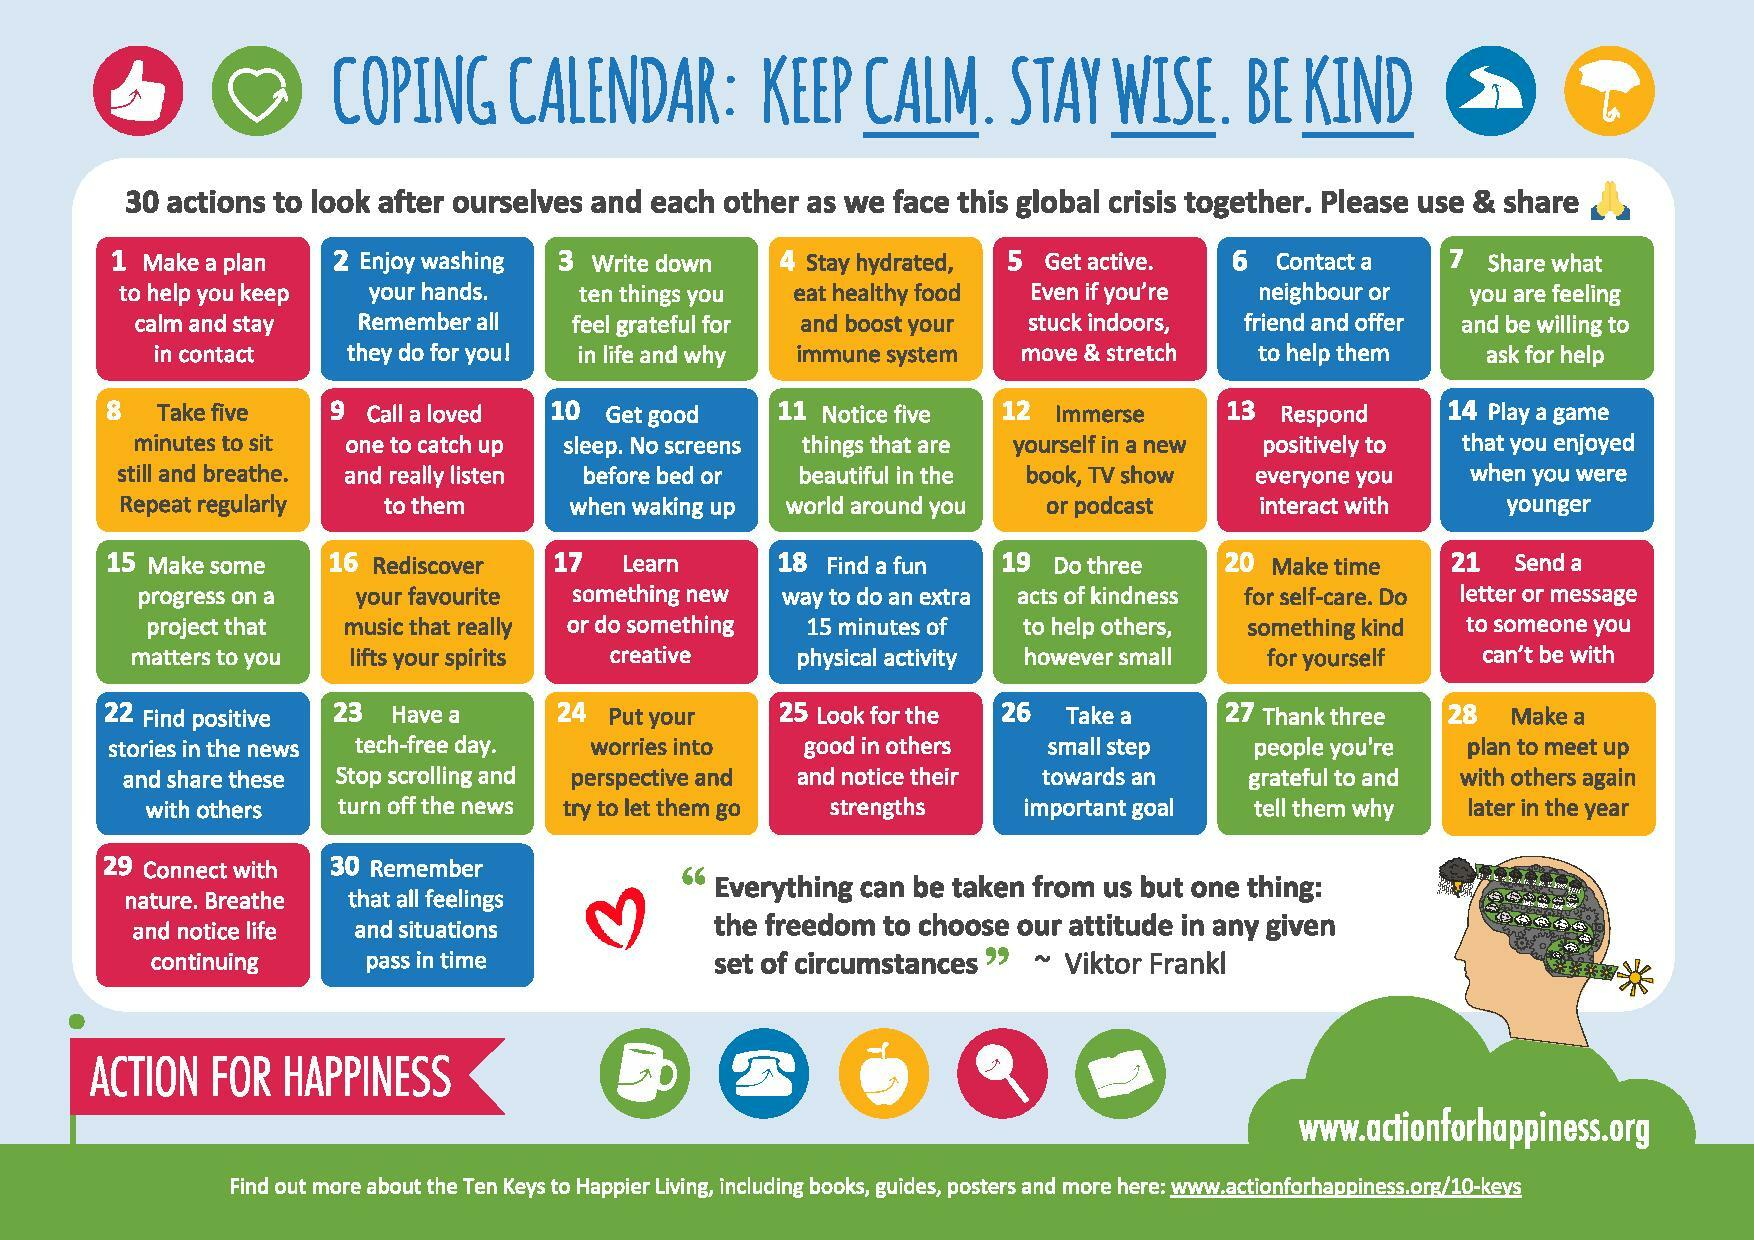 Coping calendar Keep calm Stay wise Be kind from Action for Happiness